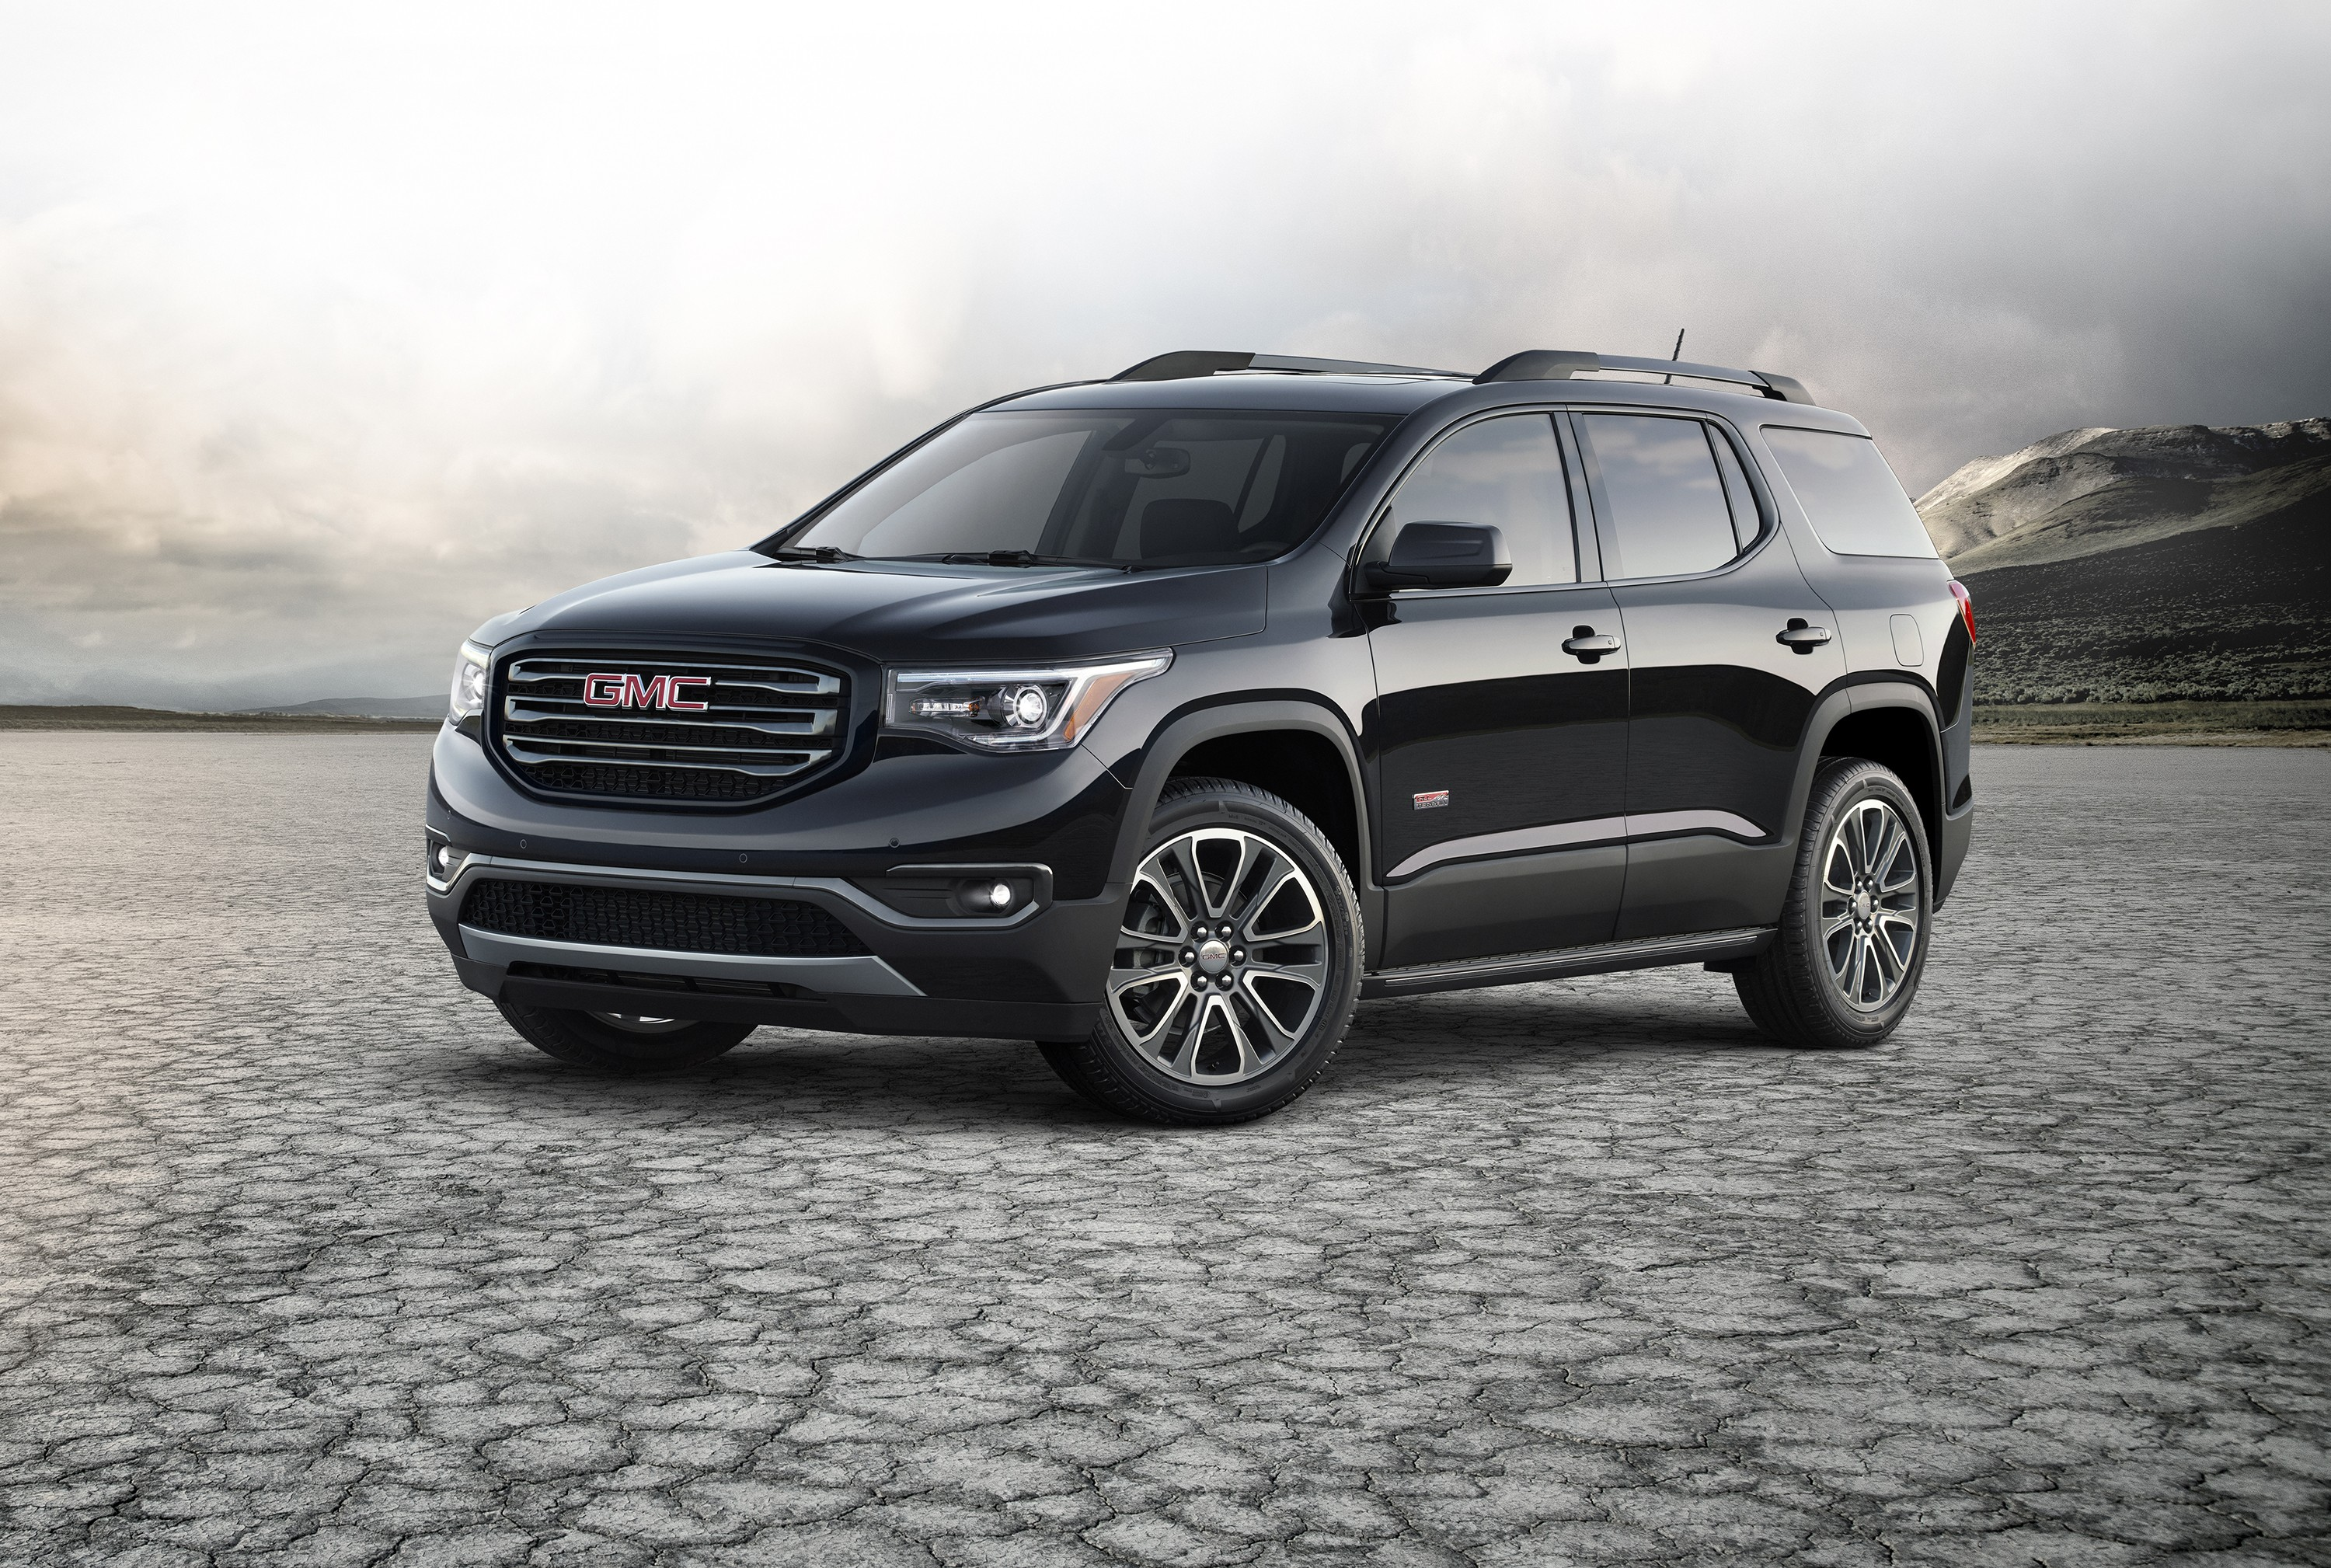 2017 gmc acadia priced at 29 995 autoevolution. Black Bedroom Furniture Sets. Home Design Ideas